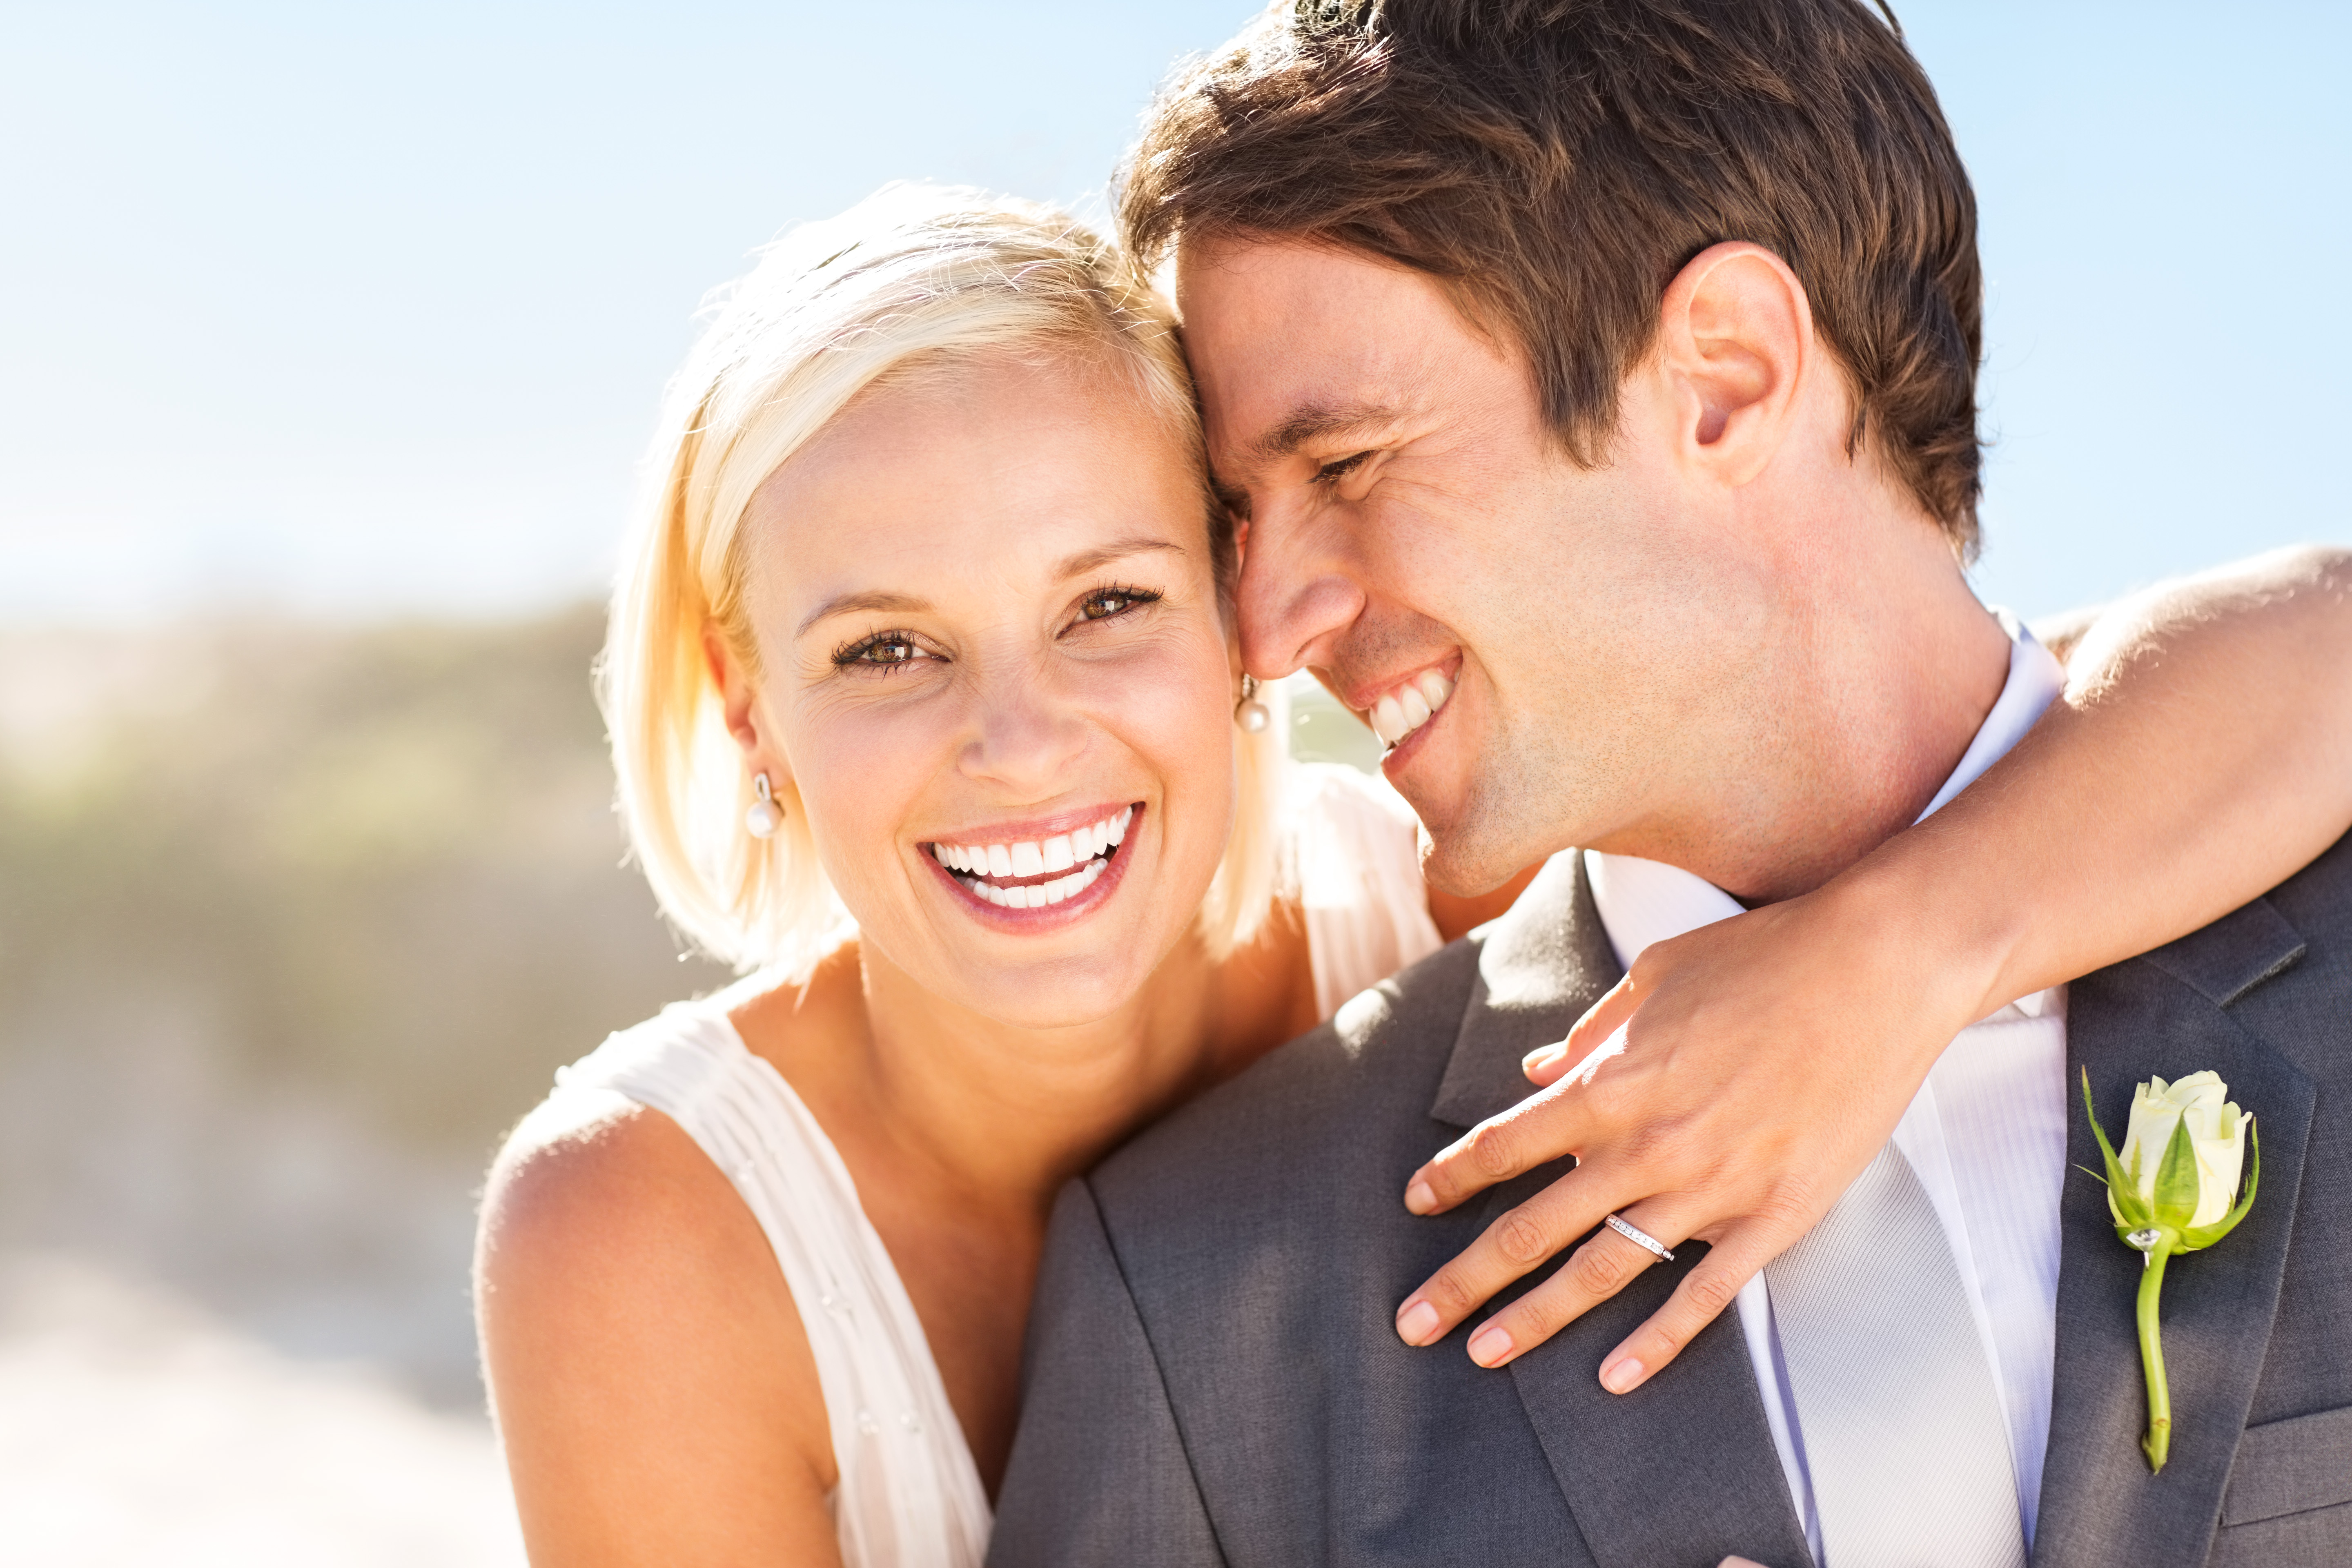 Bride and groom smiling with teeth